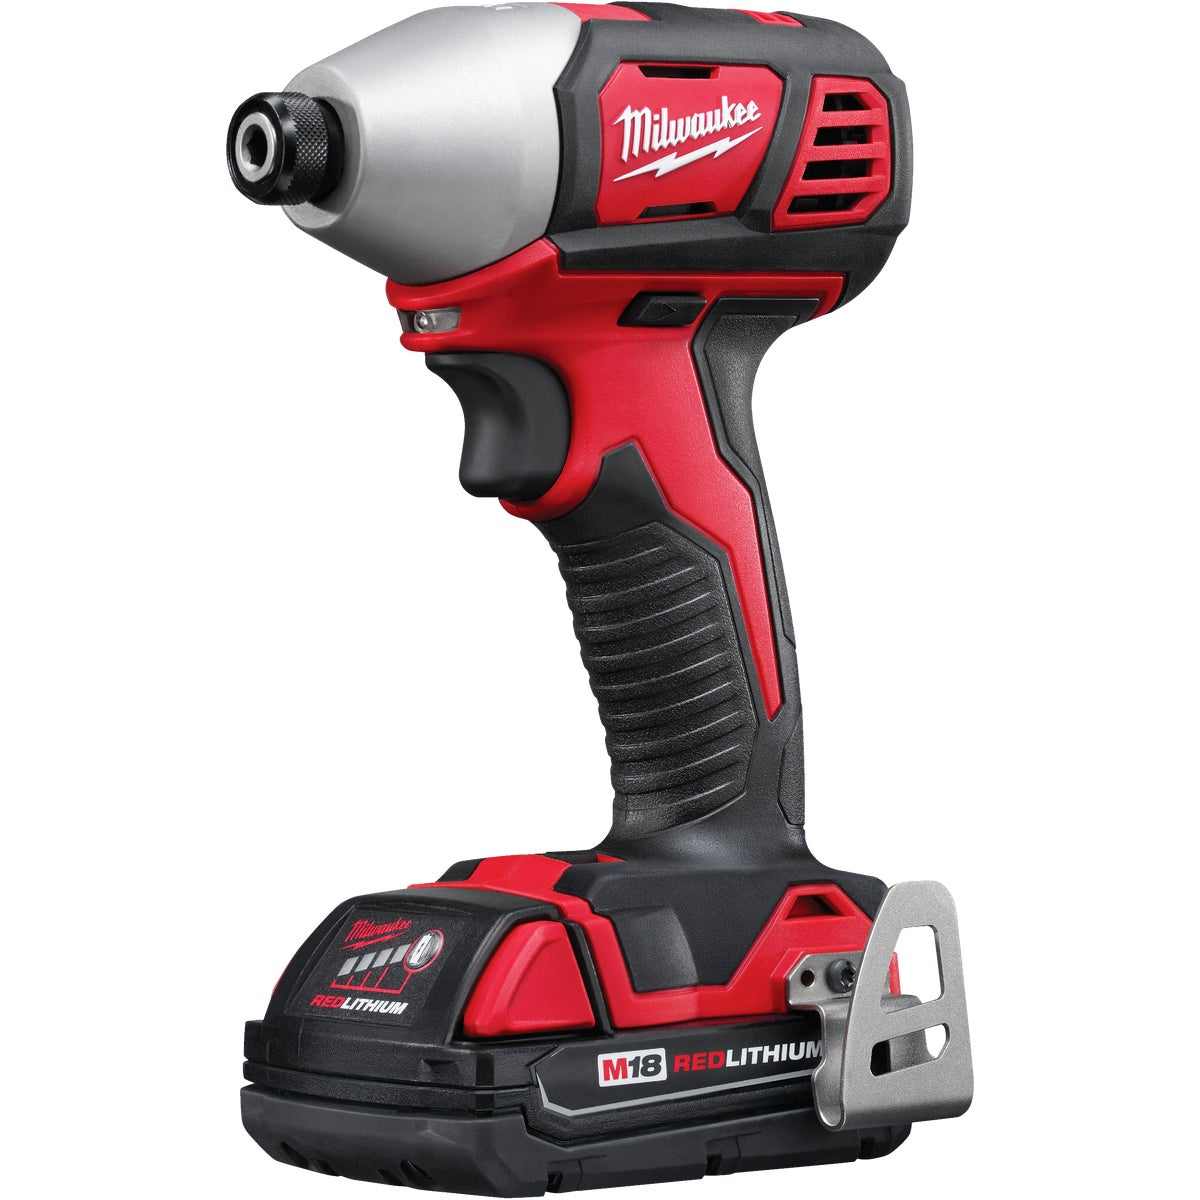 18V LI-ION IMPACT DRIVER - 265021 by Milwaukee Elec Tool